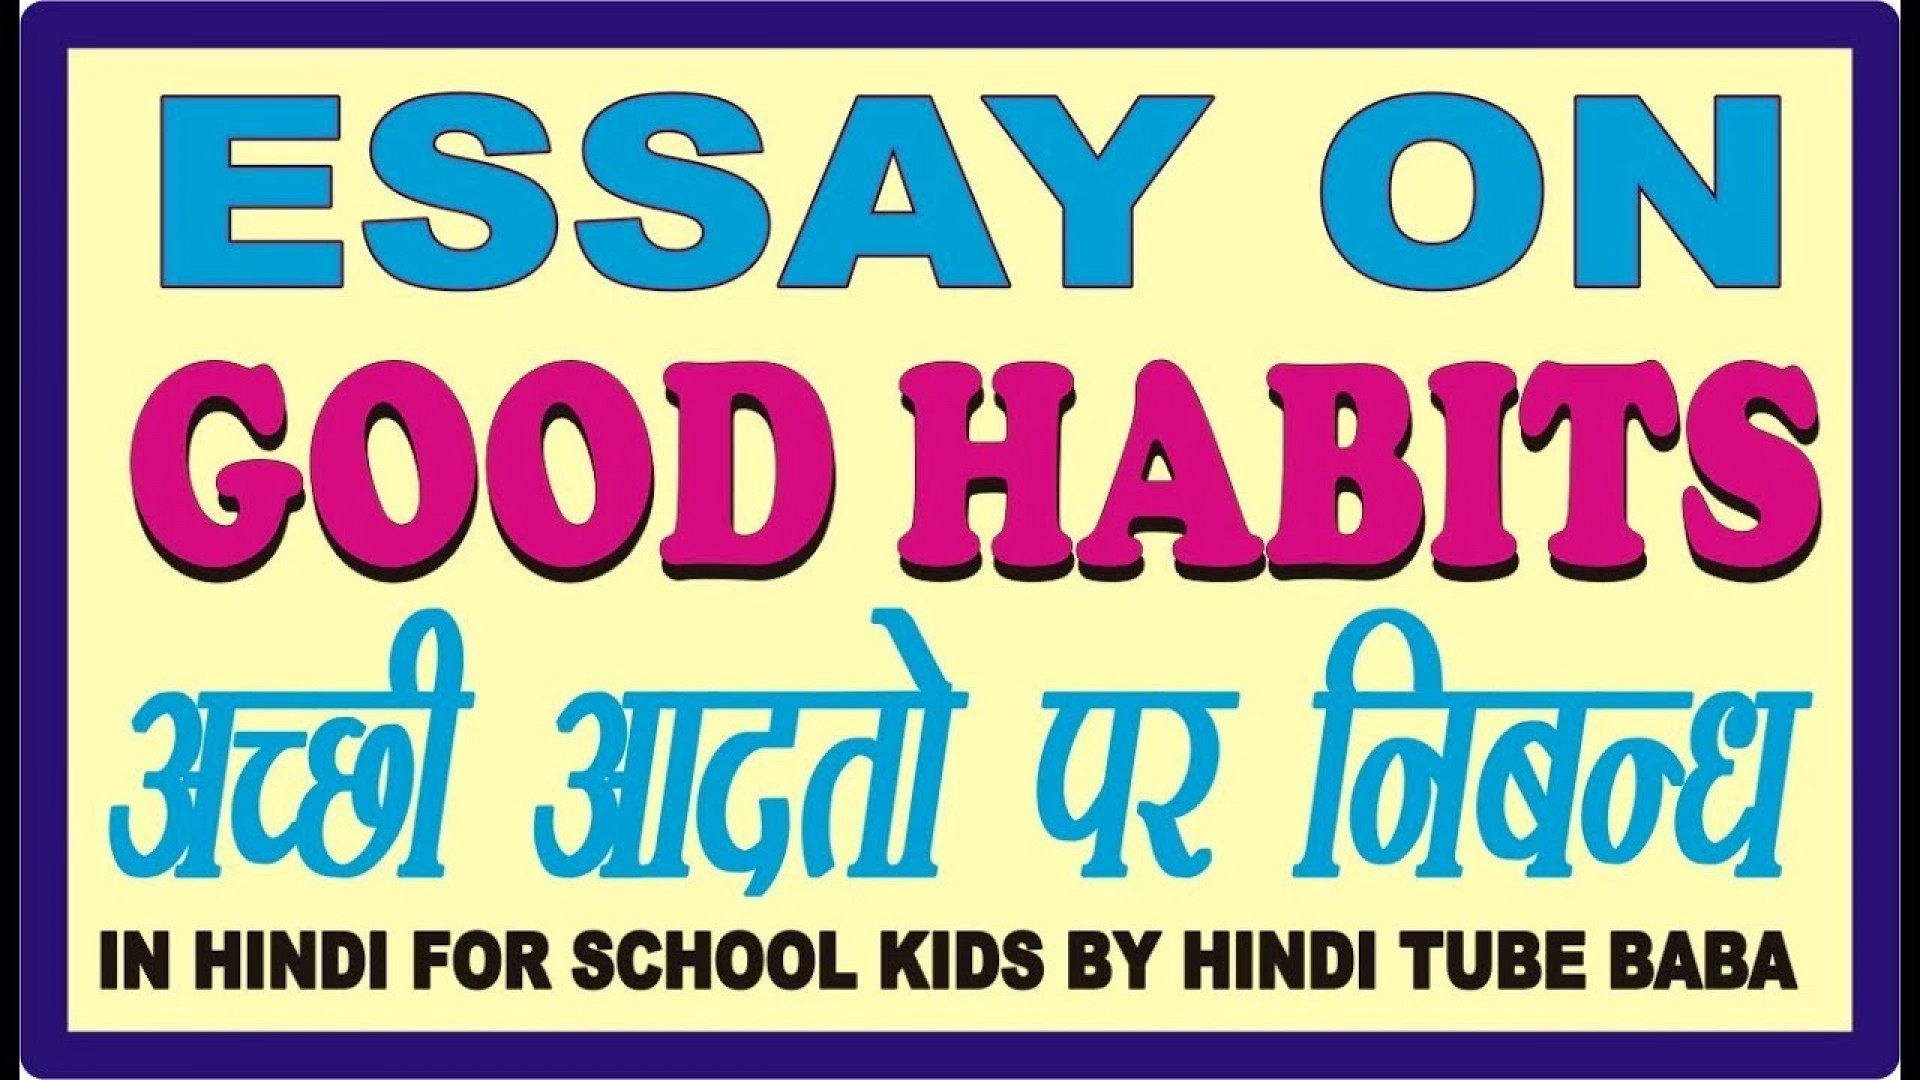 006 Good Habits Essay In Hindi Maxresdefault Exceptional Bad Eating Habit 1920